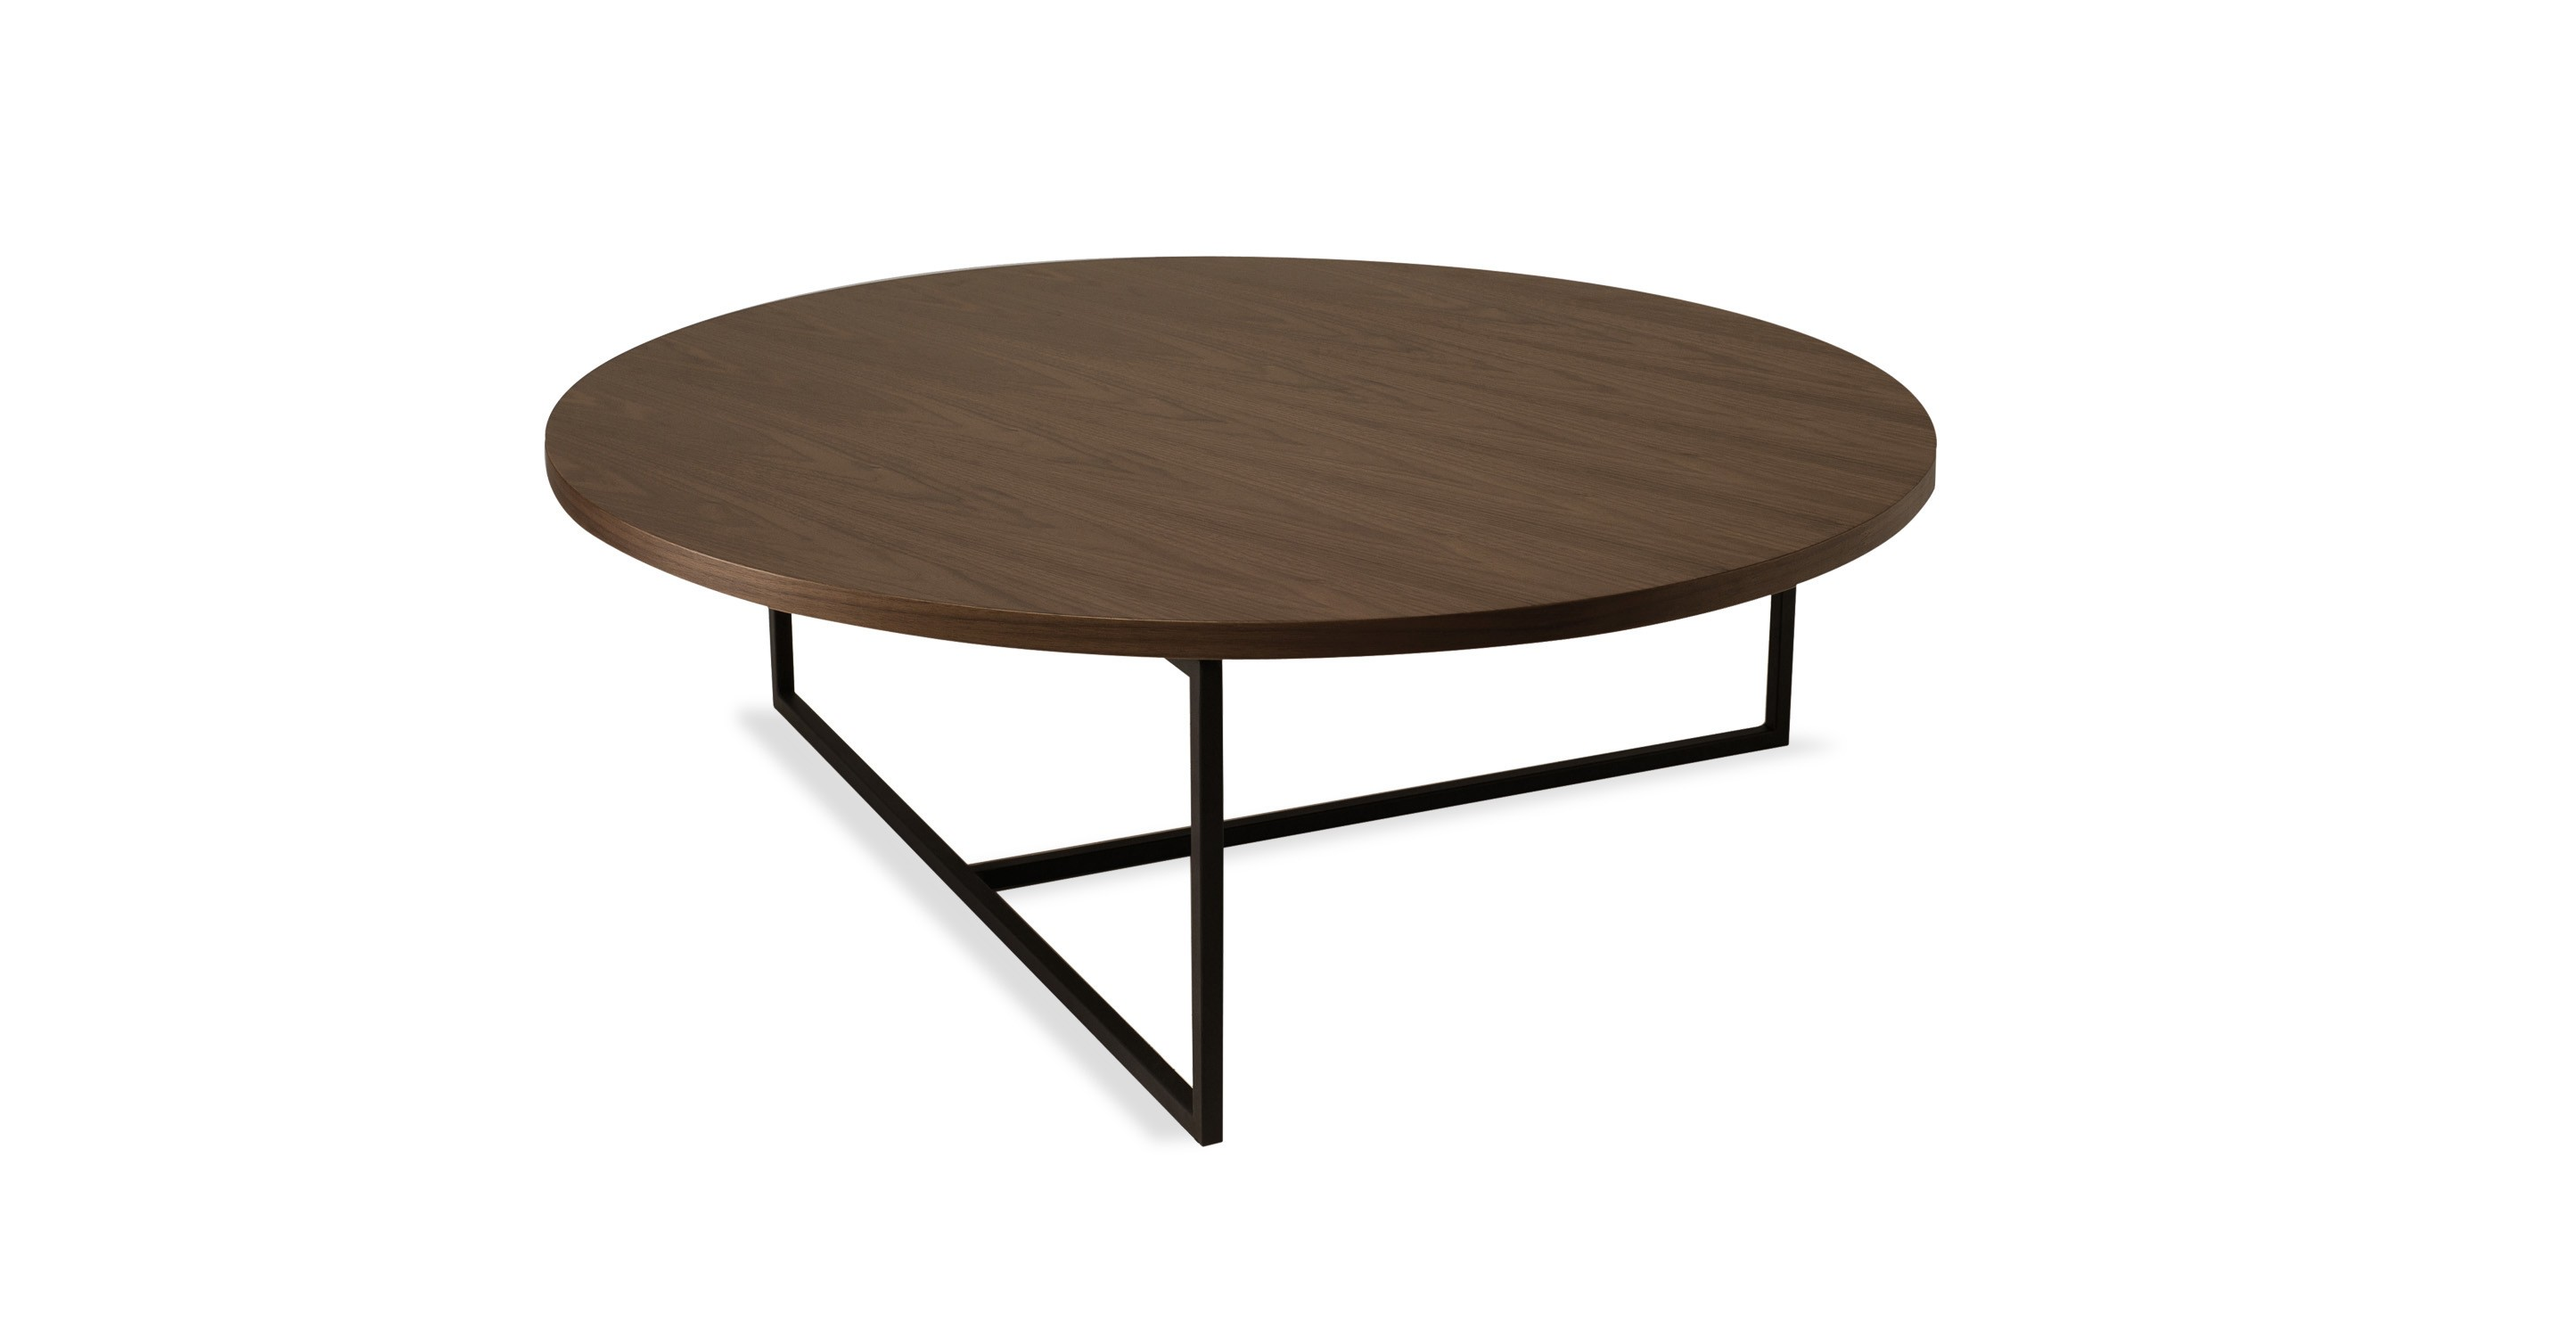 Turner walnut round coffee table coffee tables article modern mid century and Round coffee table modern